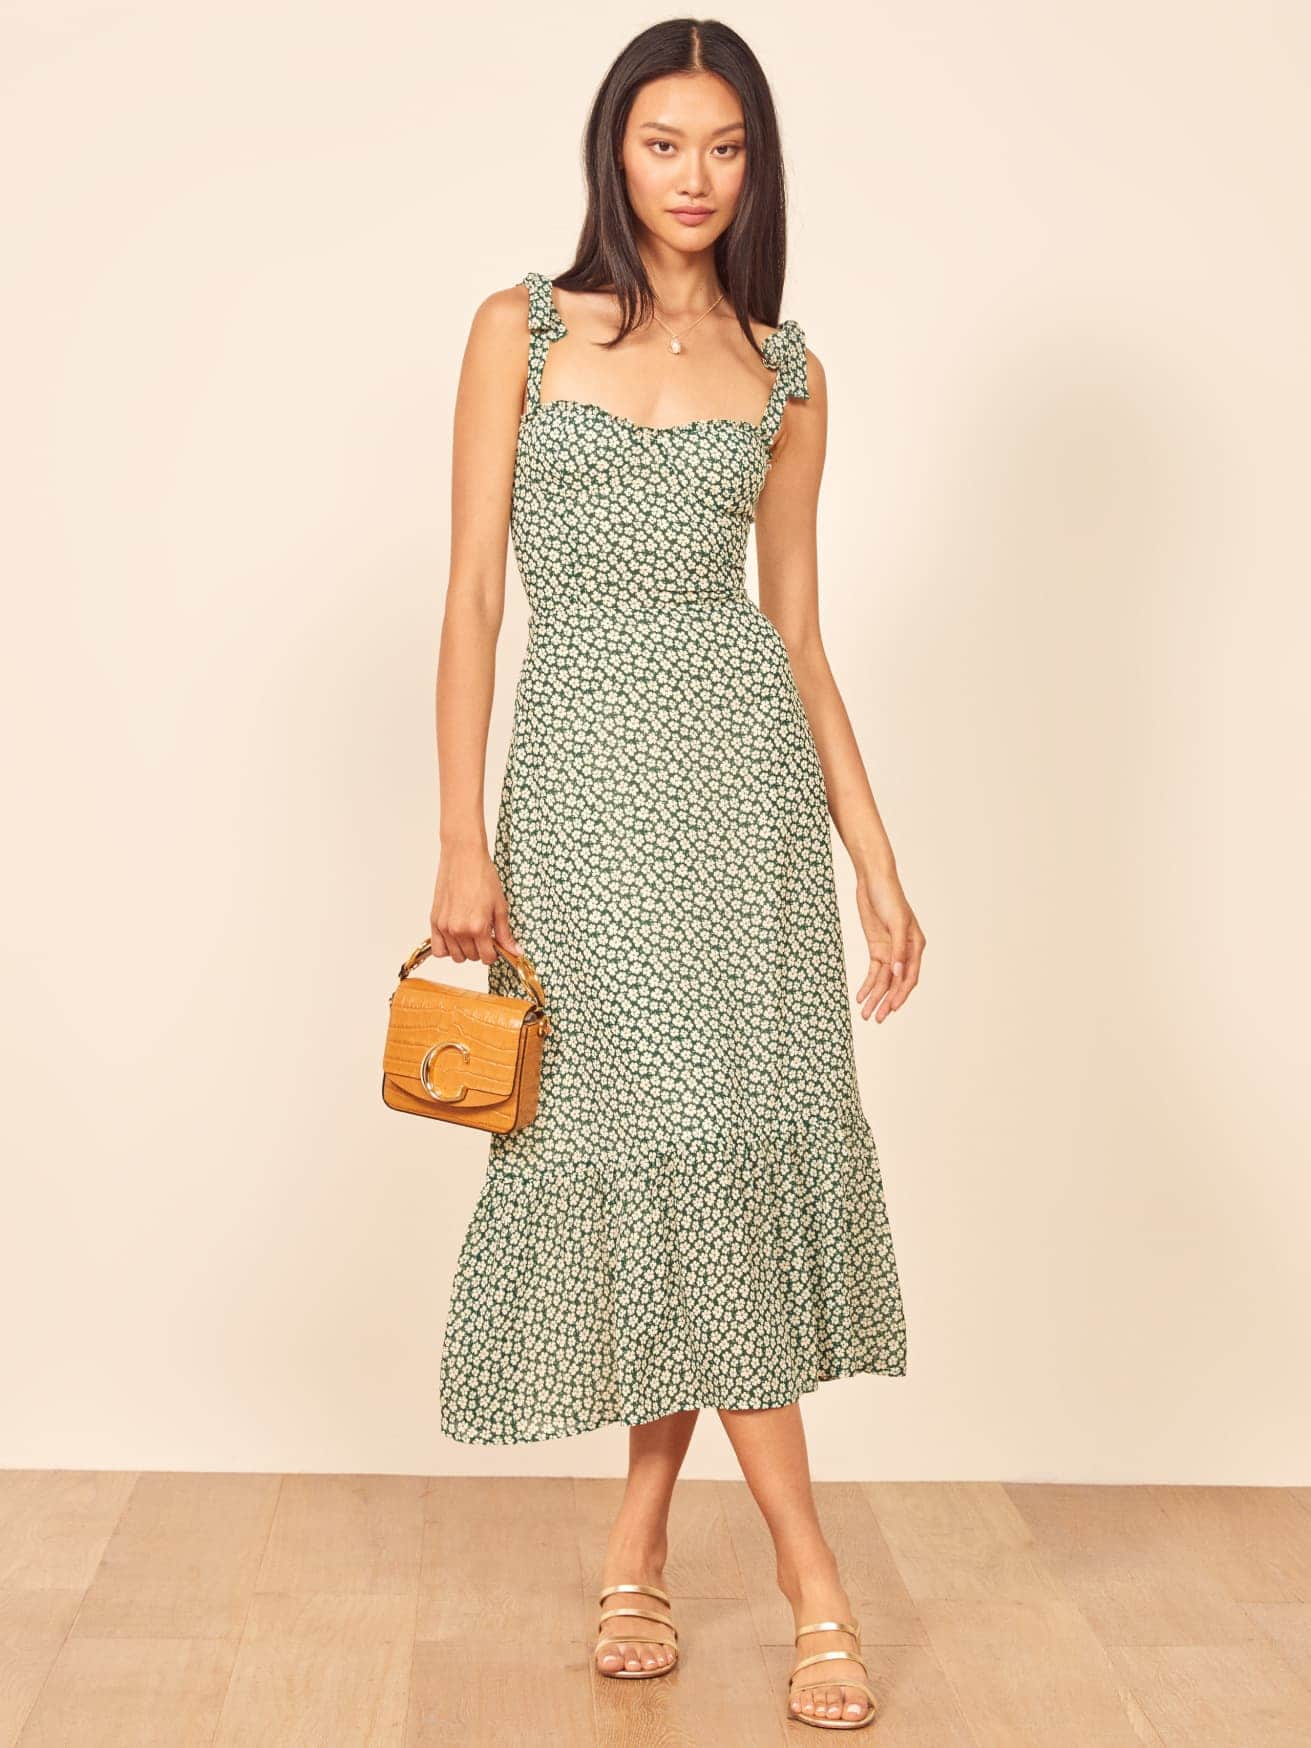 Reformation sustainable fashion summer dresses